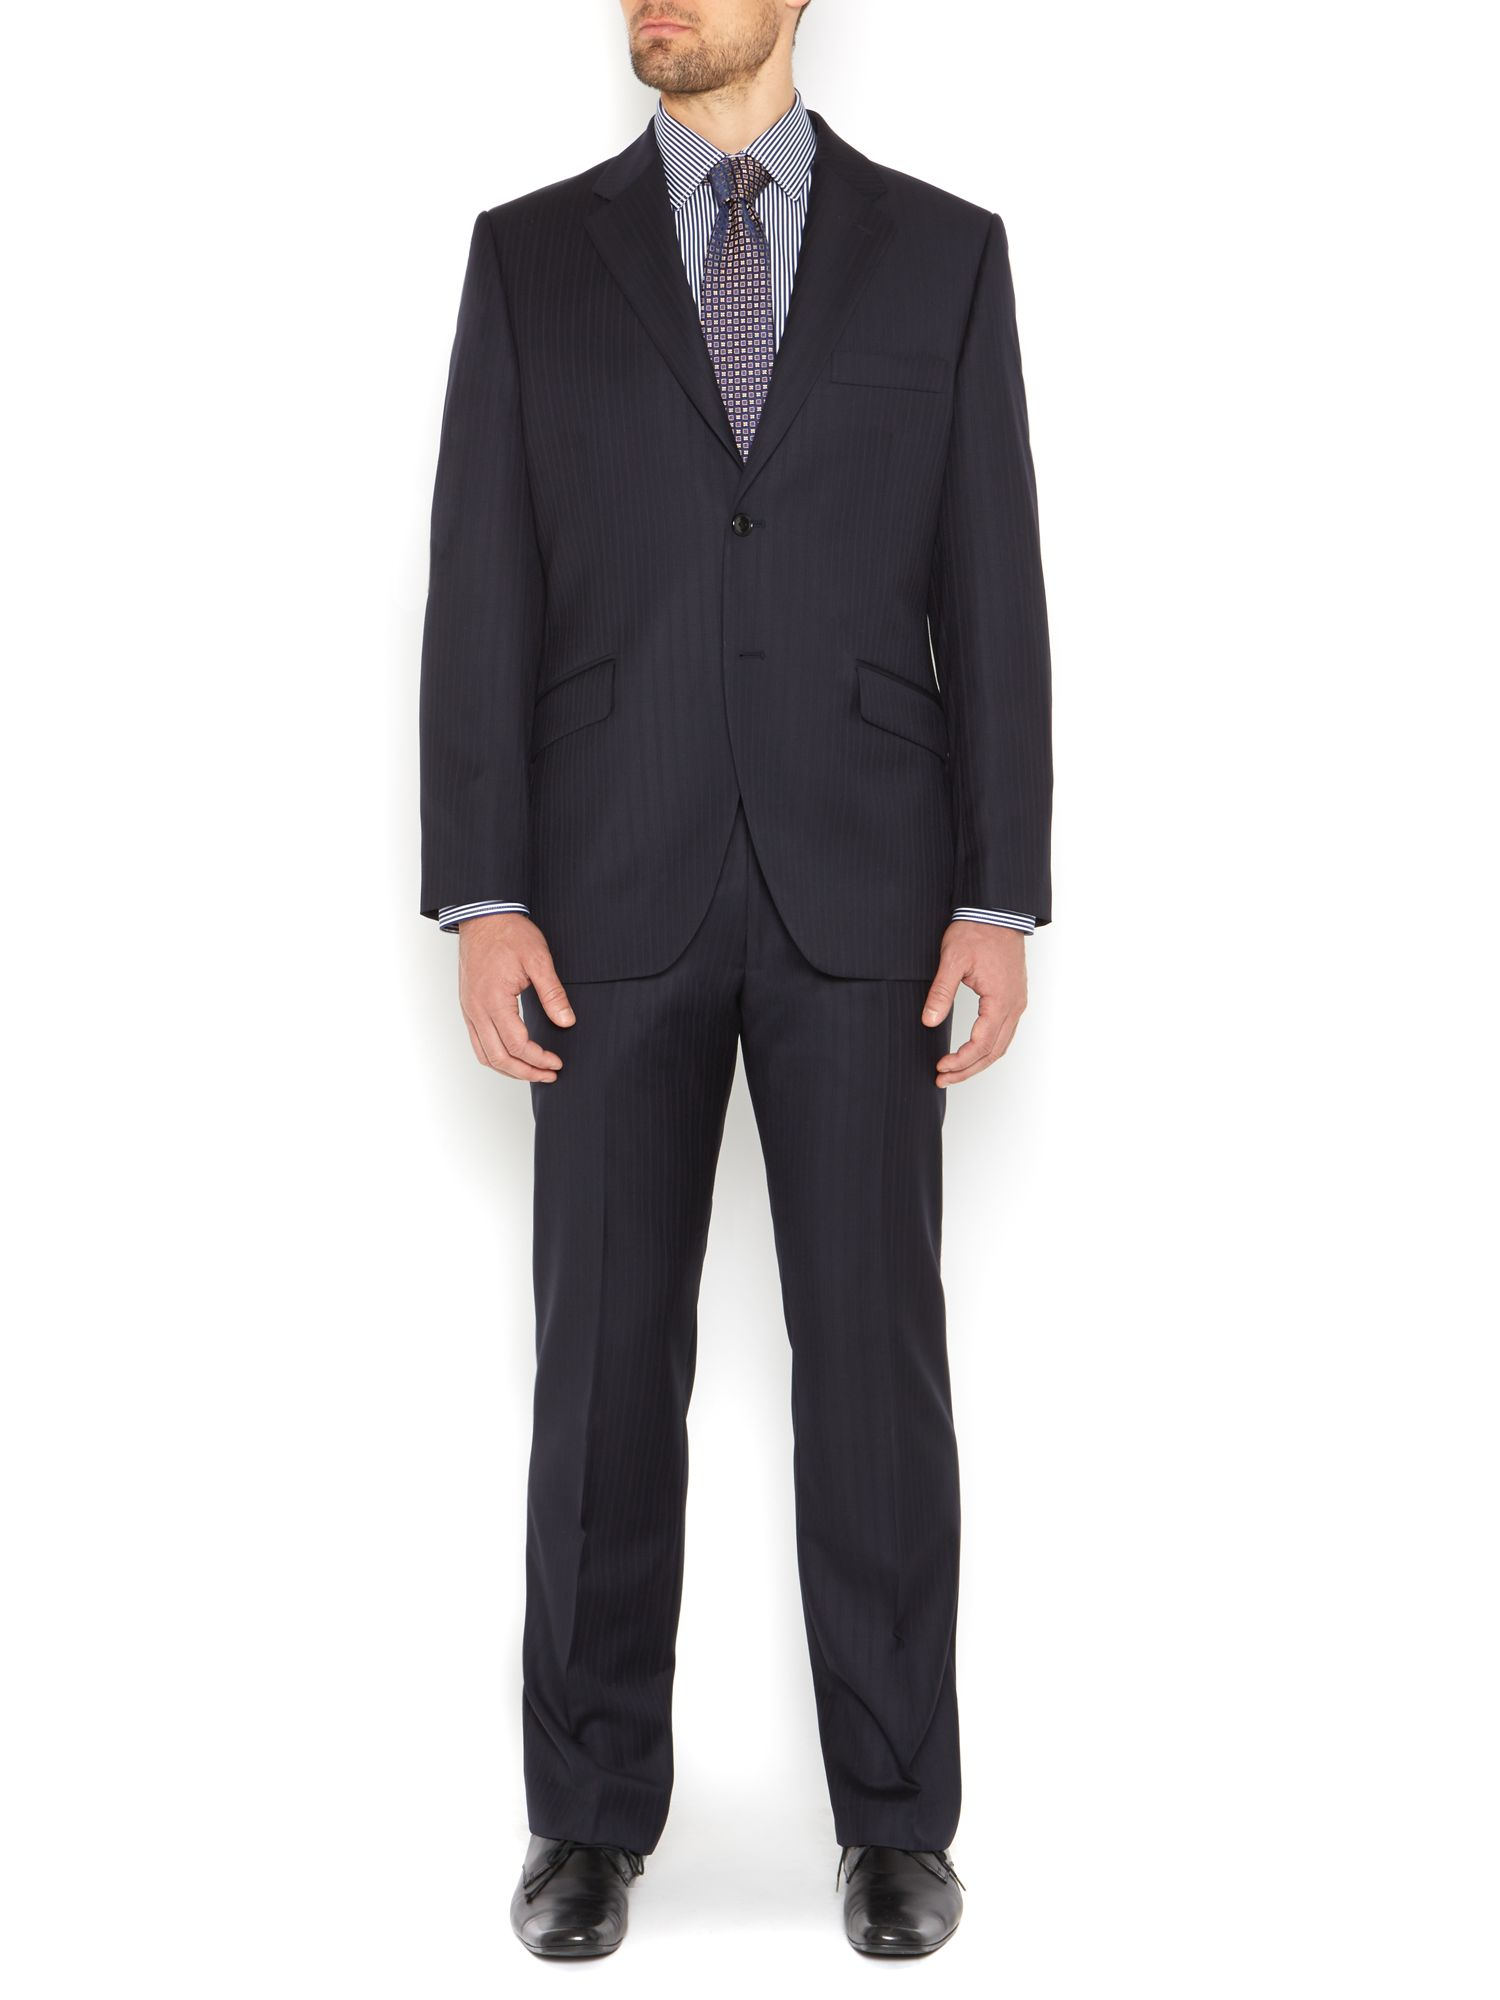 Whitehurst suit